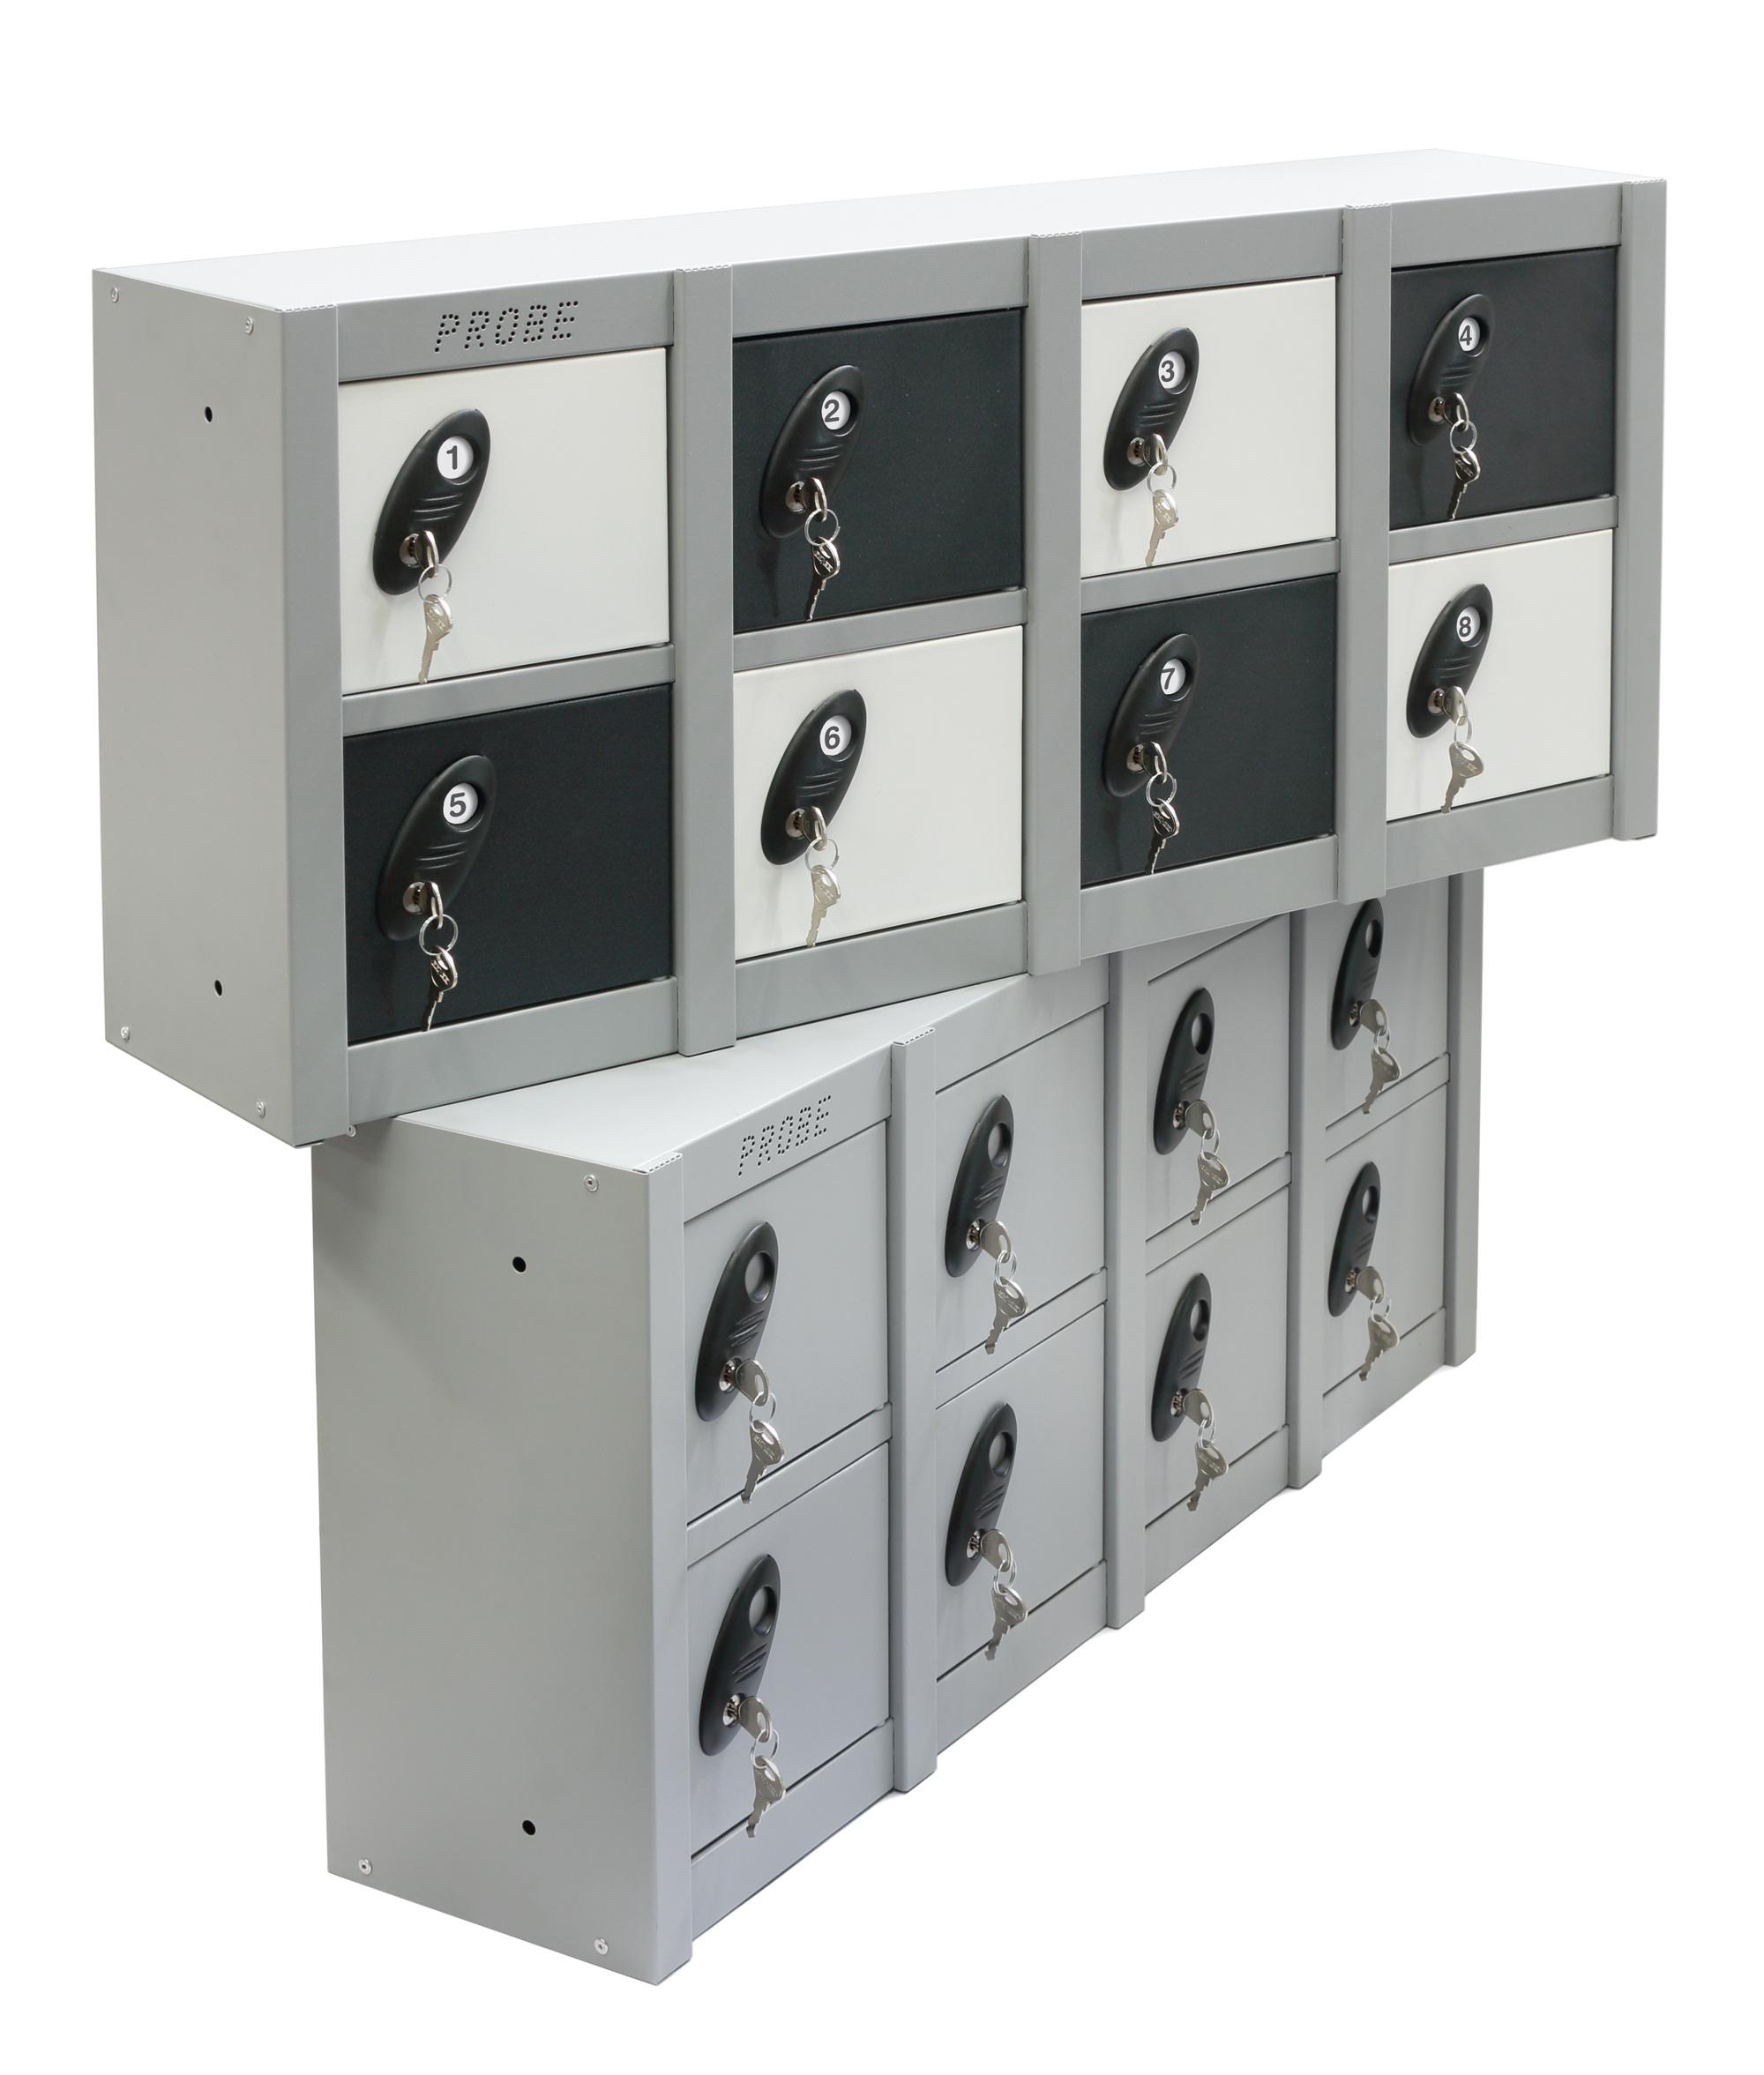 8 Compartments Mobile Phone and Personal Effect Locker